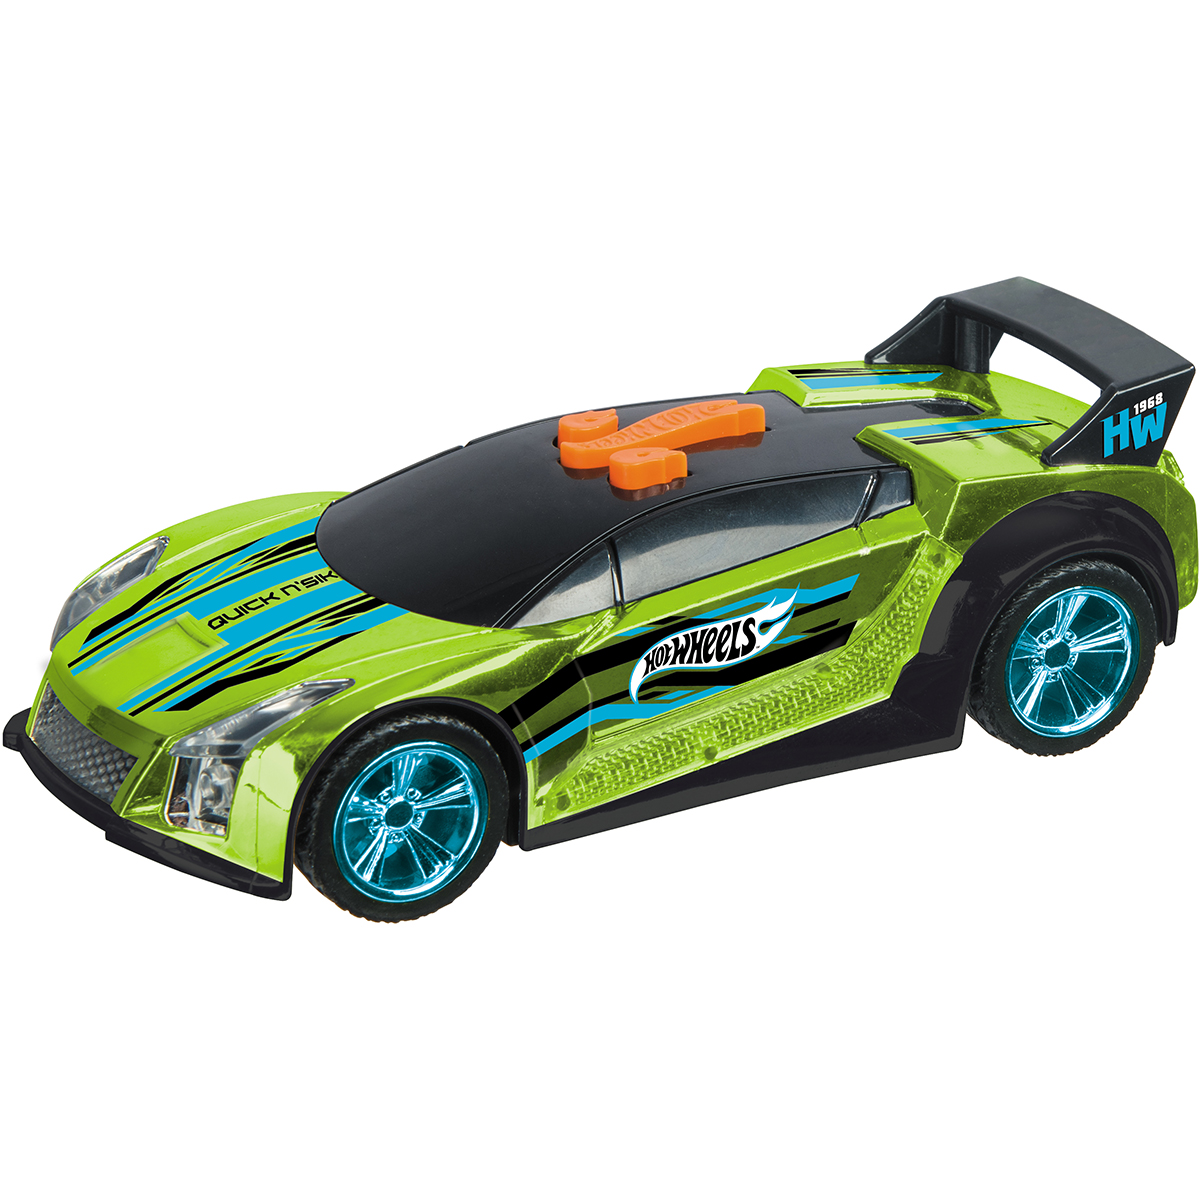 Masinuta cu lumini si sunete Hot Wheels, Quick and Sik, Verde